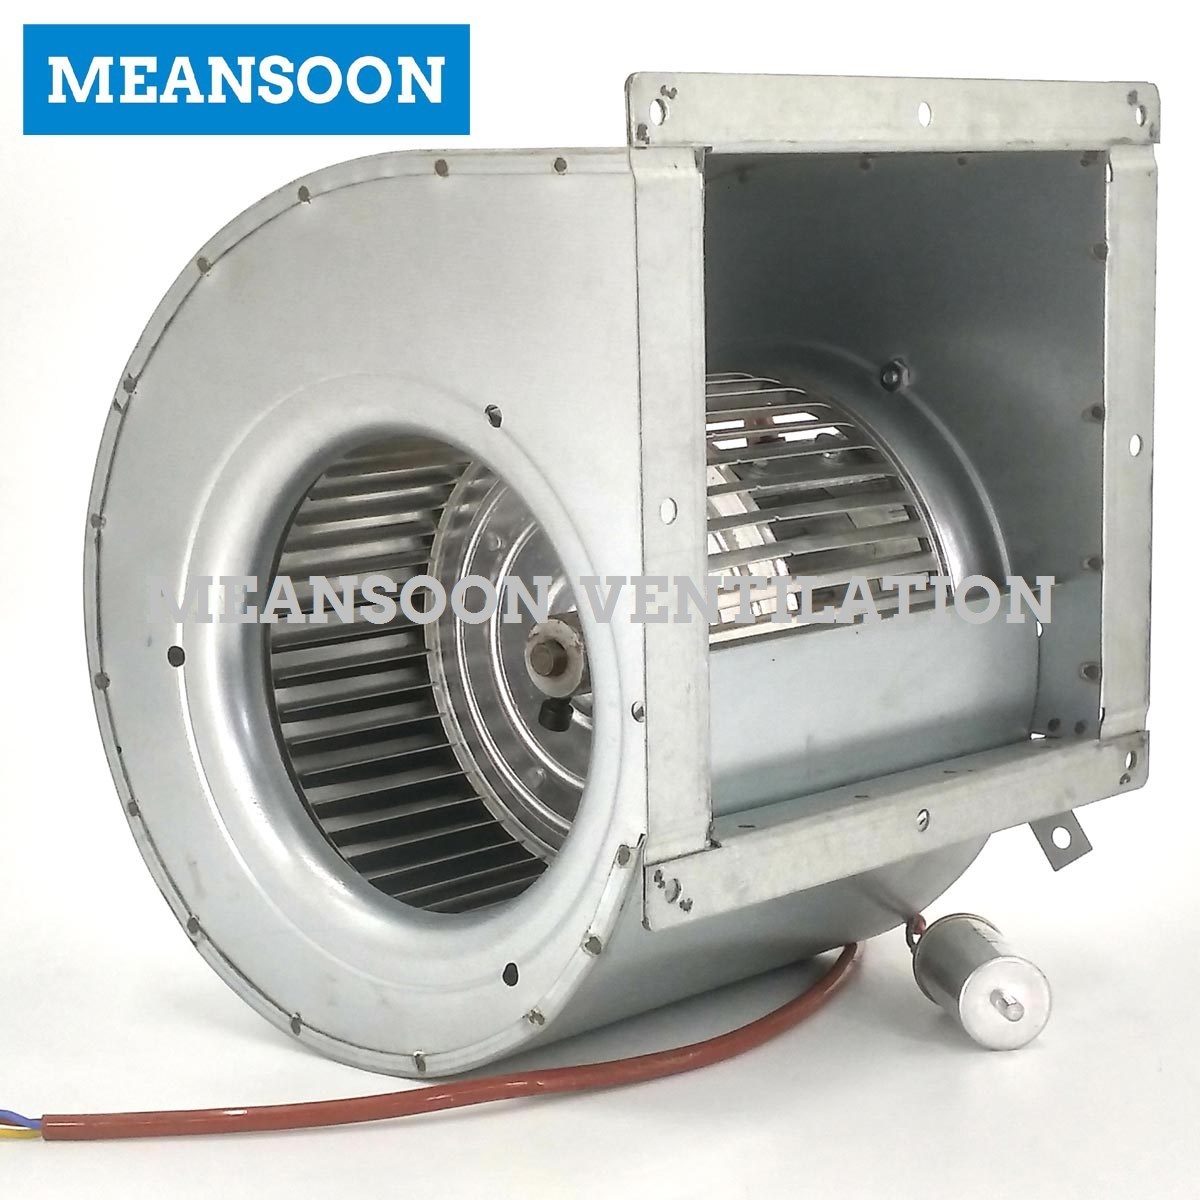 7-7-900 Double Inlet Radial Fans in Inch for Kitchen Ventilation